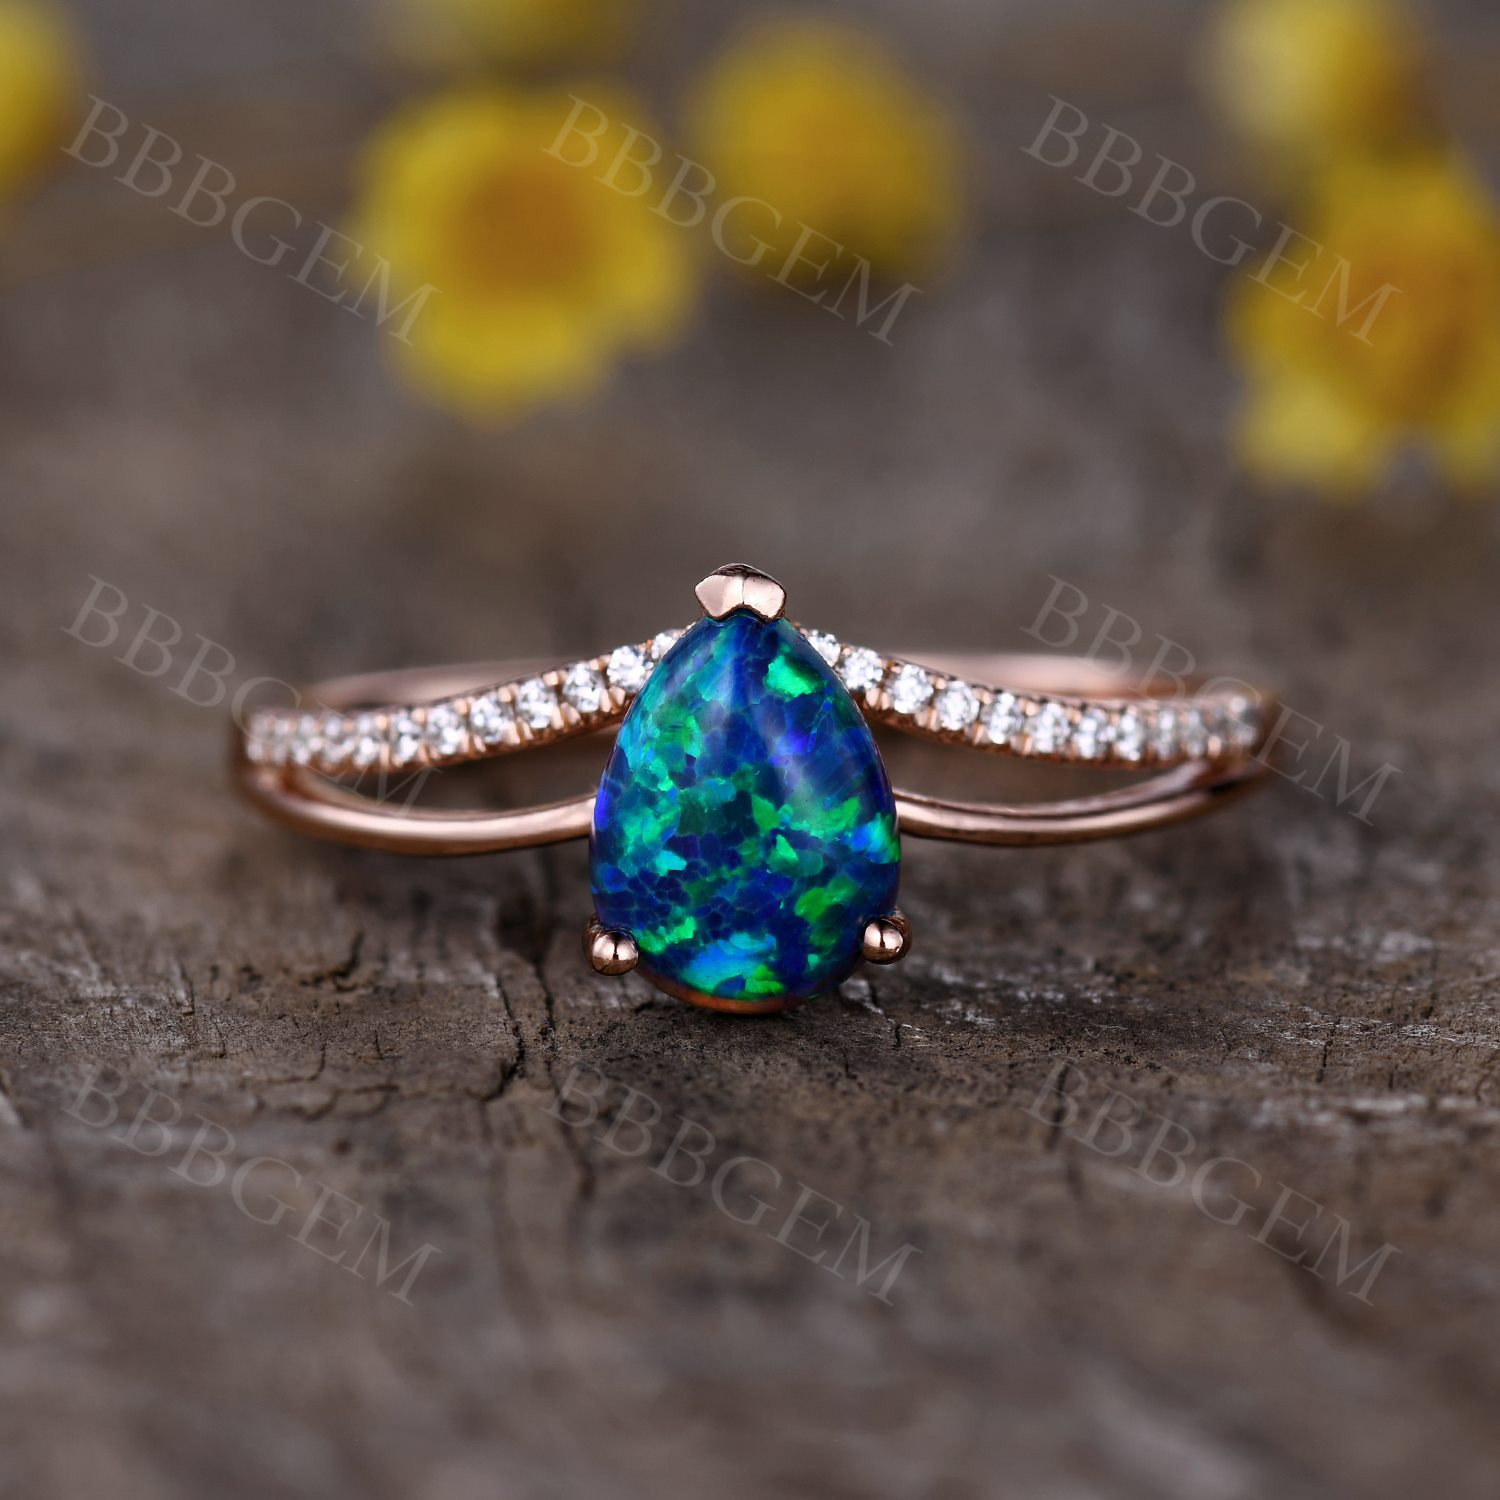 4 Contemporary Black Opal Engagement Ring set Trends in 2021